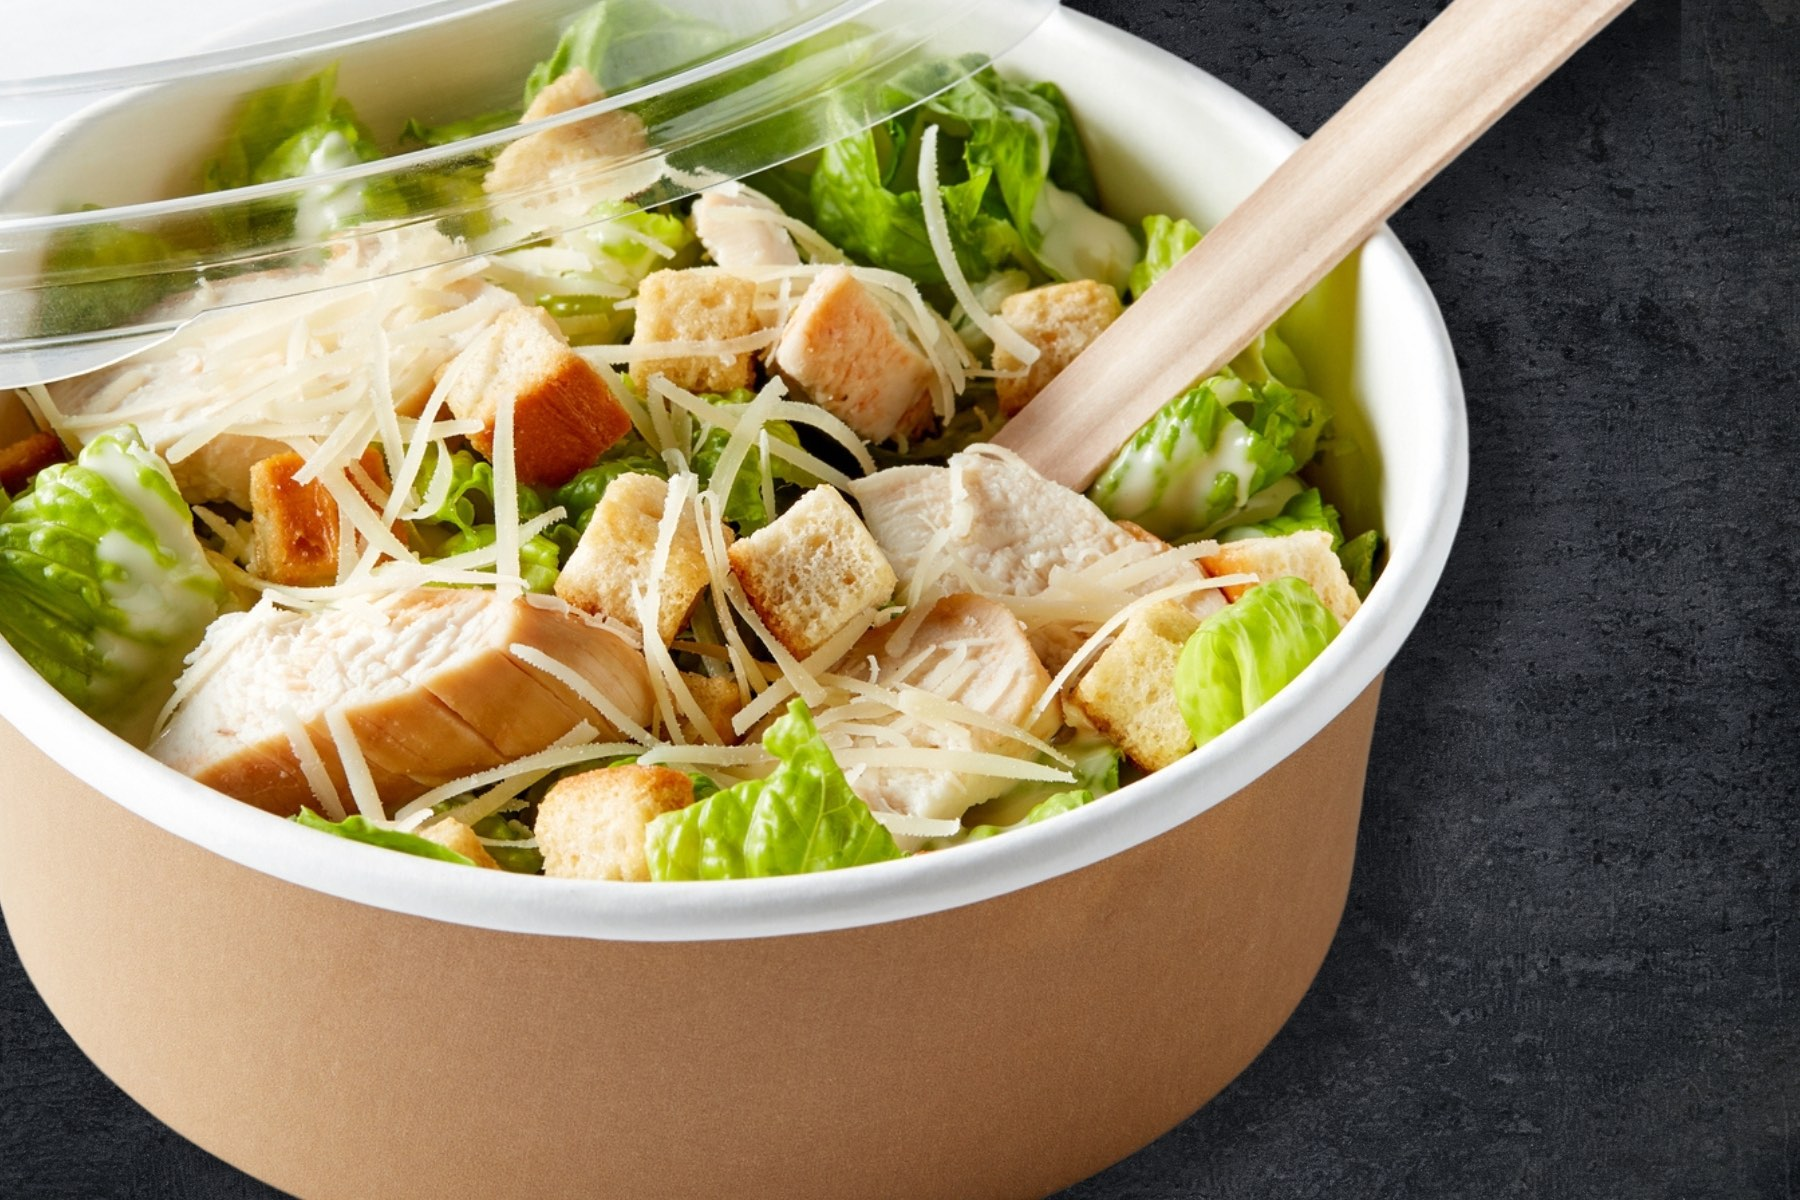 Image of a single serving of caesar salad in a takeout container